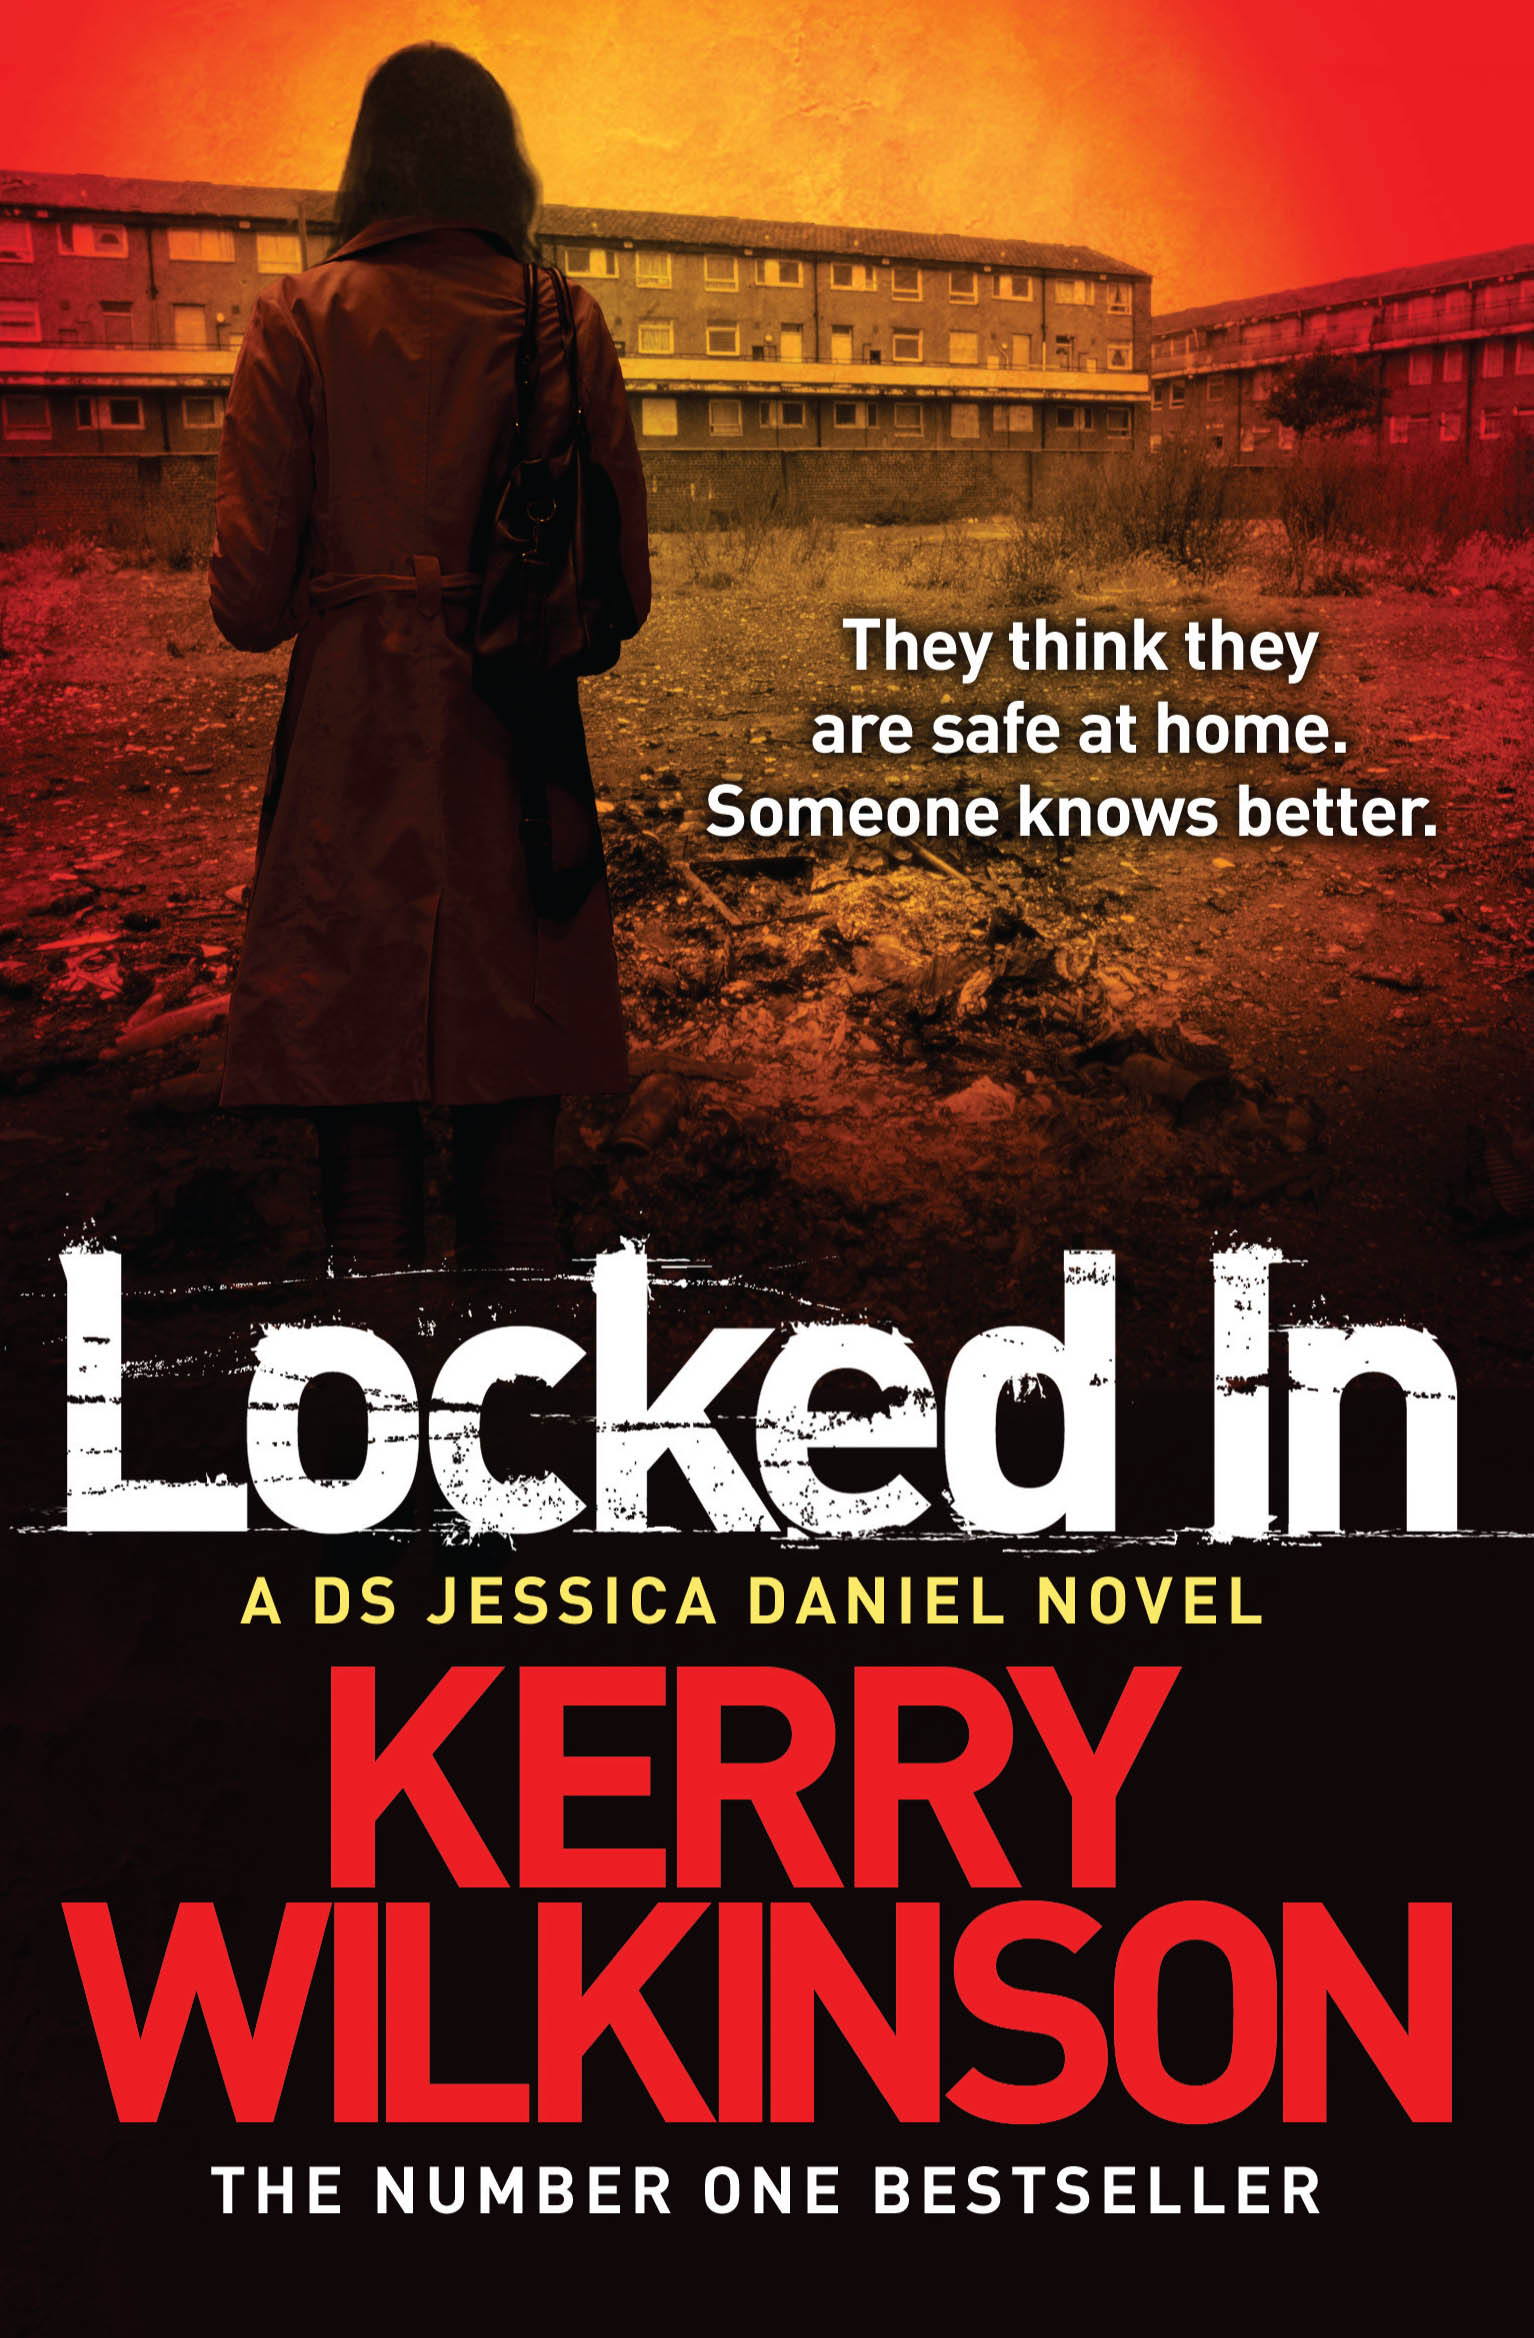 Woman In Black Book Cover : Jessica daniel books all new covers for locked in